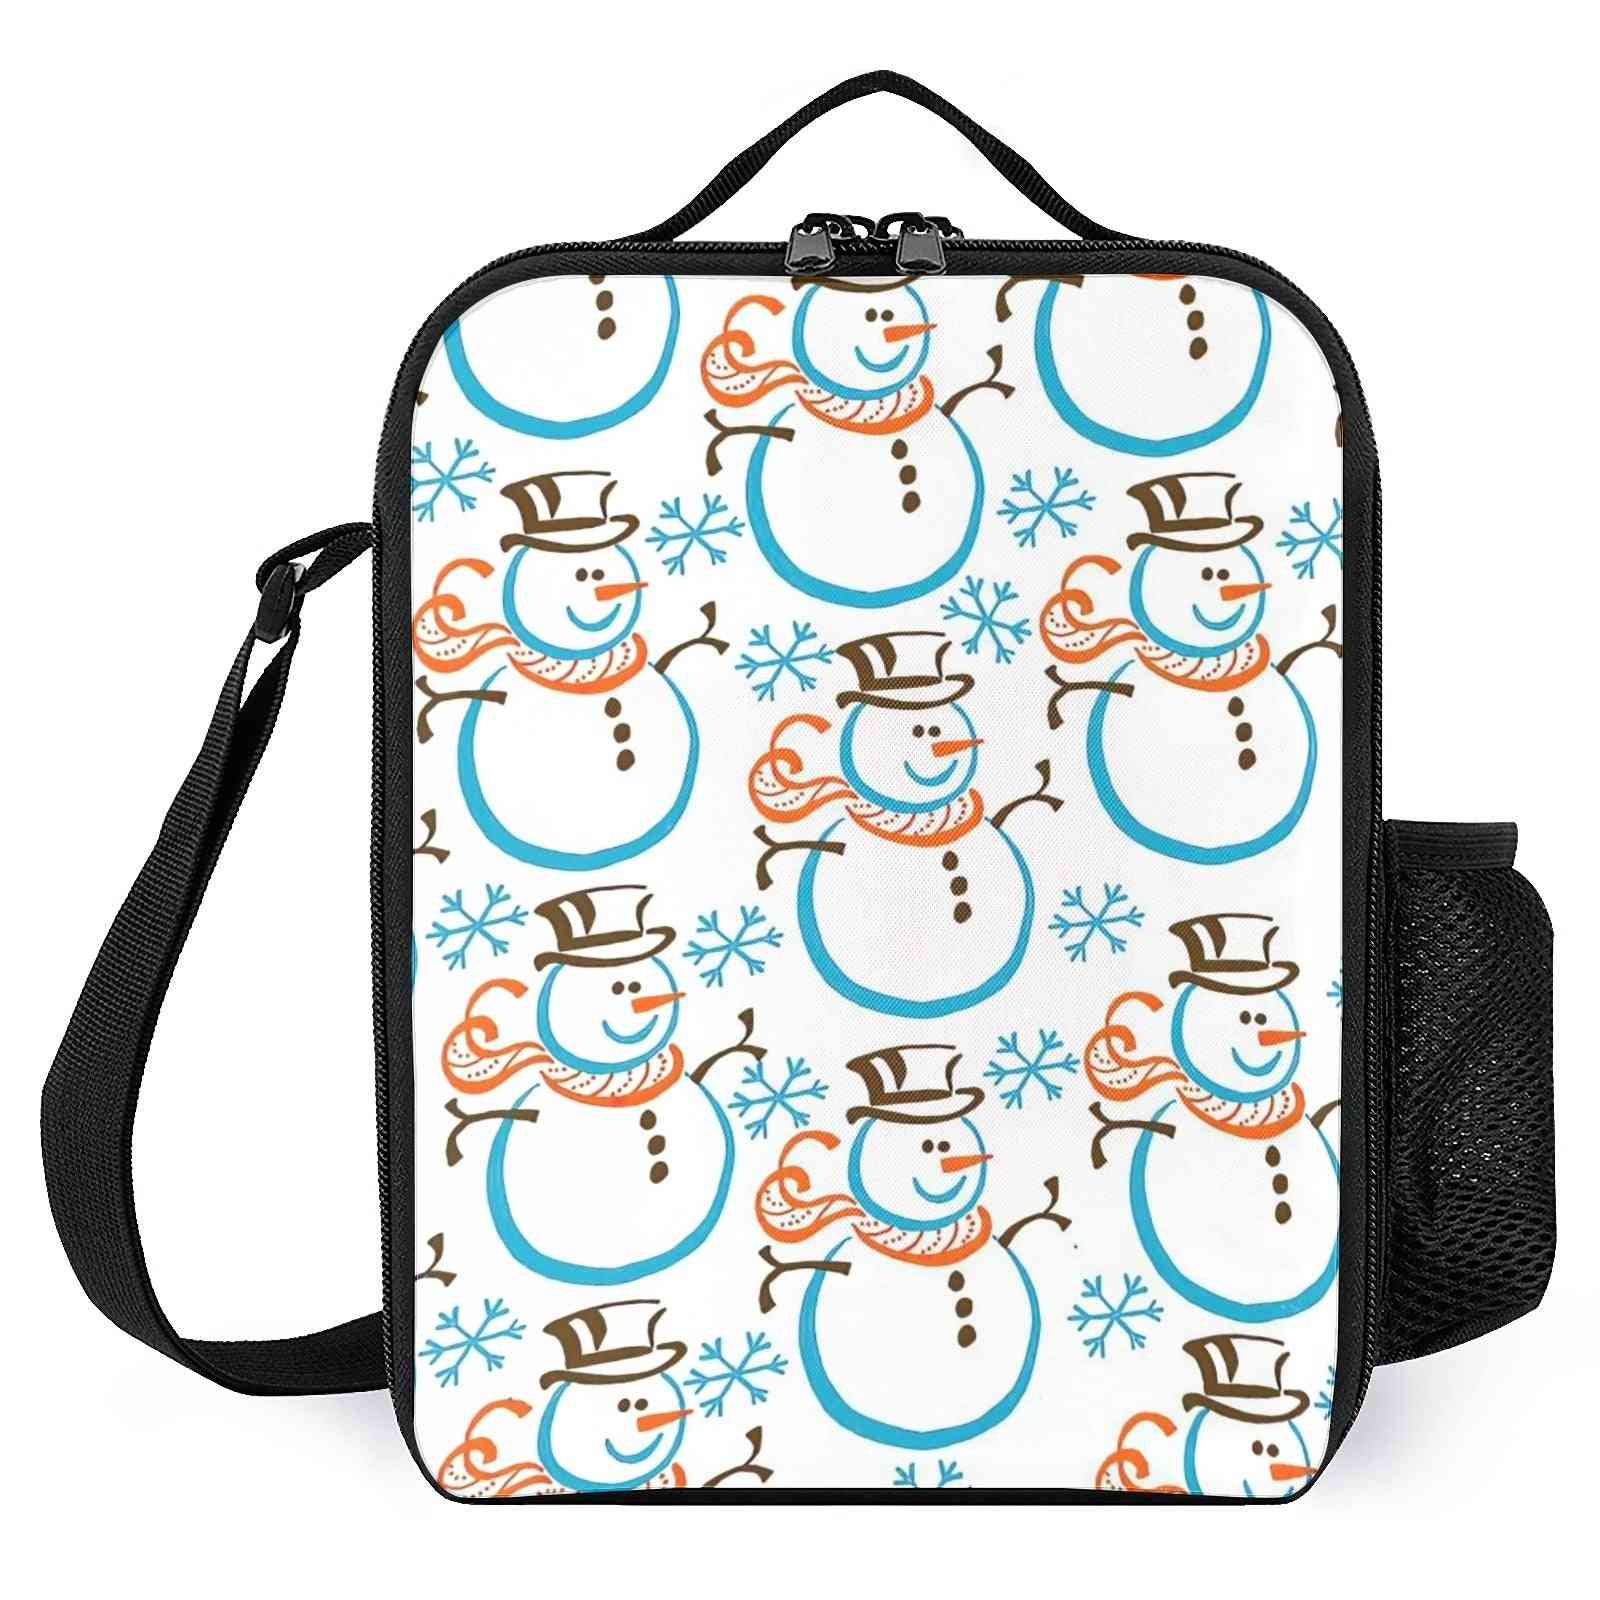 Snowman Printed Insulated Lunch Bags For Work/school